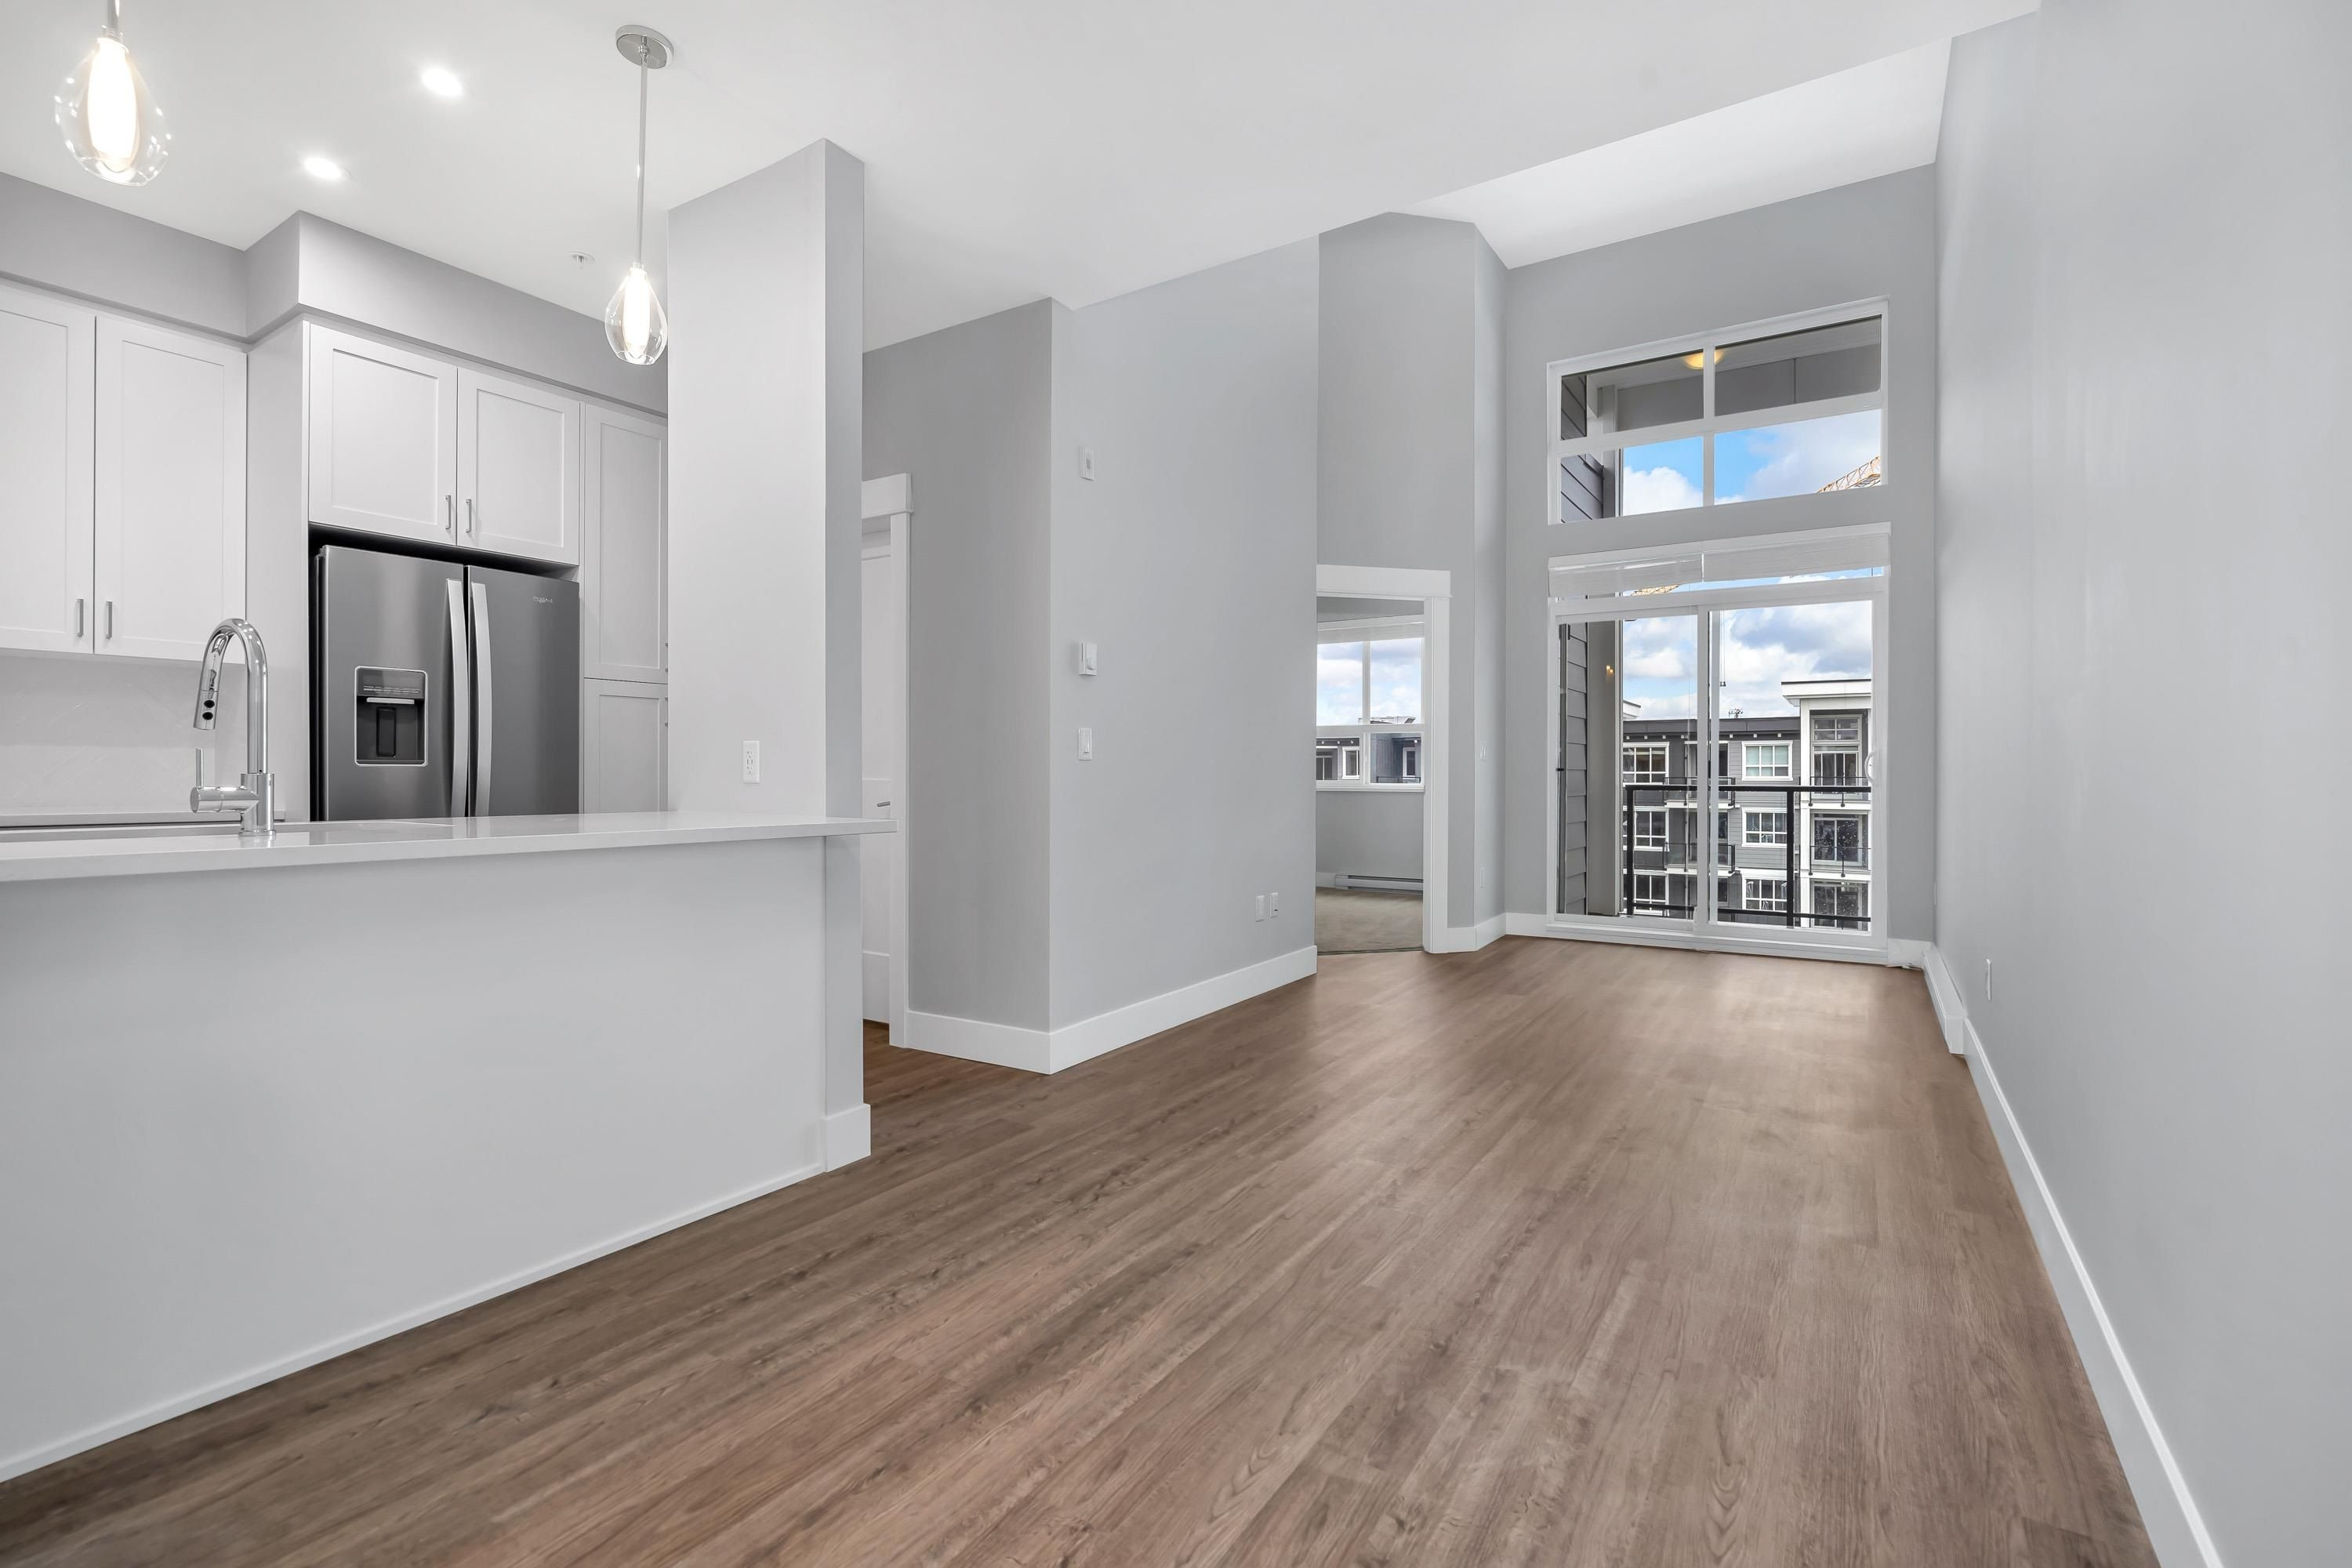 """Main Photo: 4616 2180 KELLY Avenue in Port Coquitlam: Central Pt Coquitlam Condo for sale in """"Montrose Square"""" : MLS®# R2625759"""